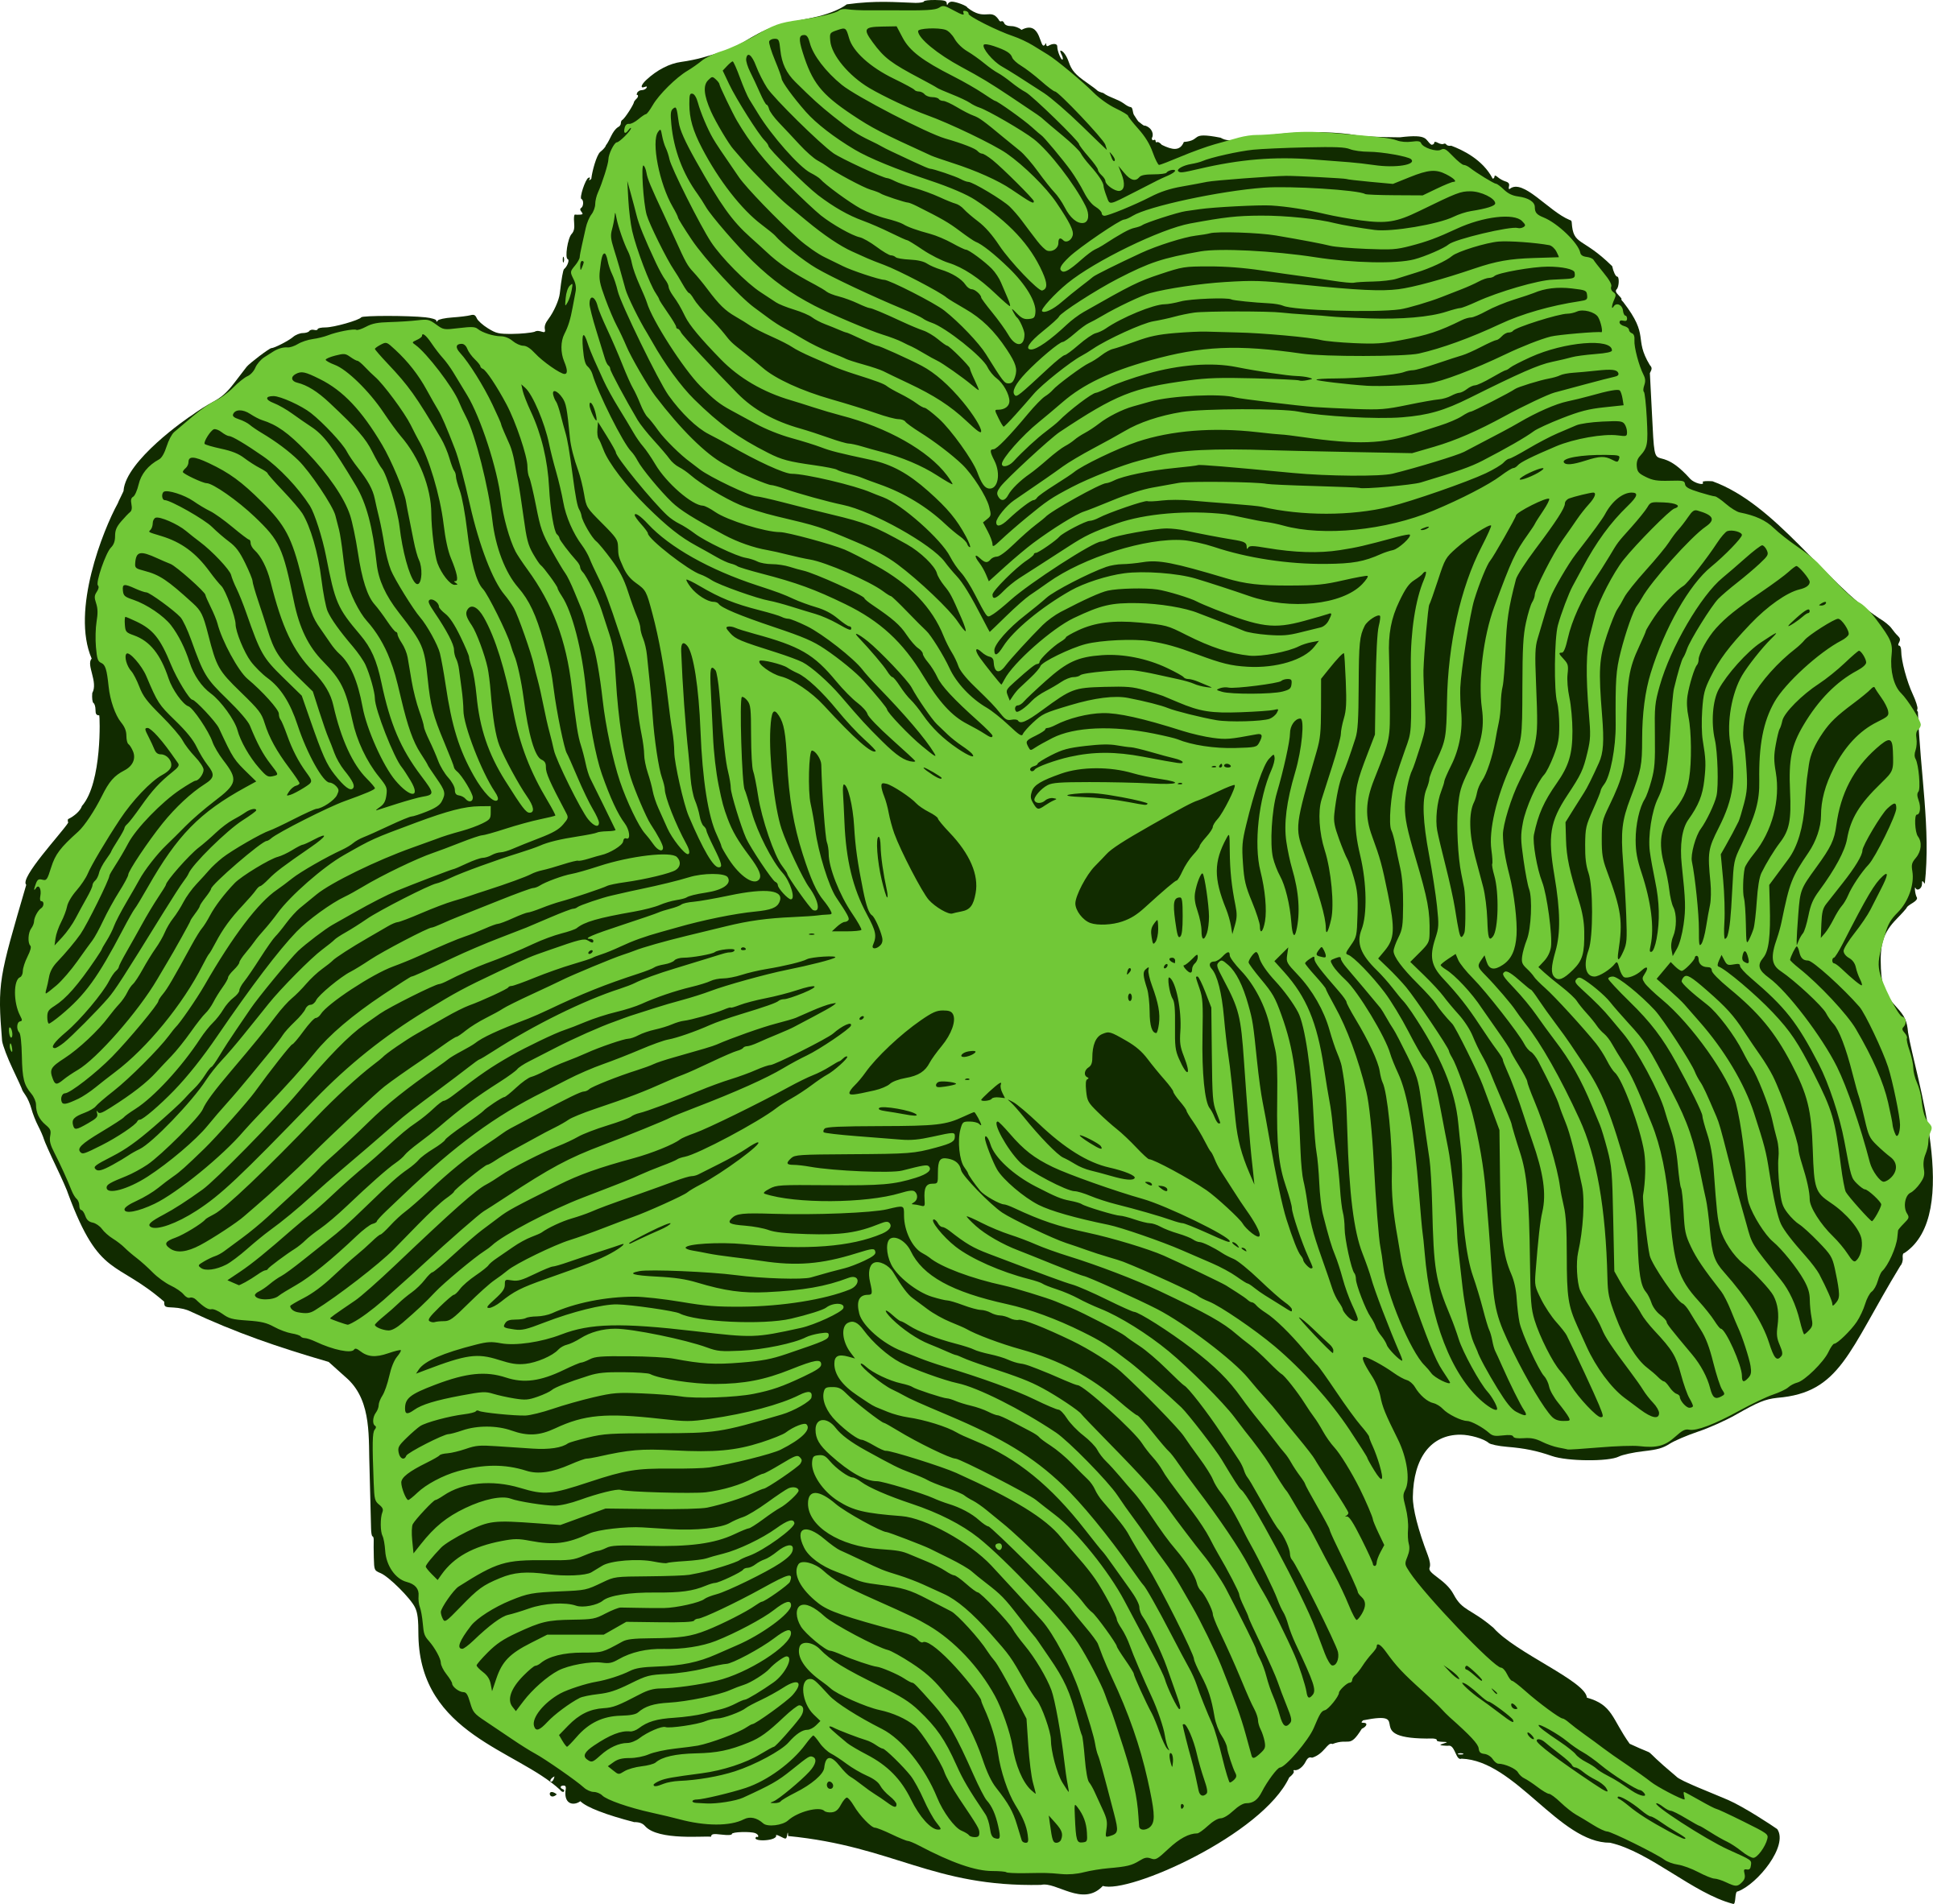 Four Leaf Clover by j4p4n